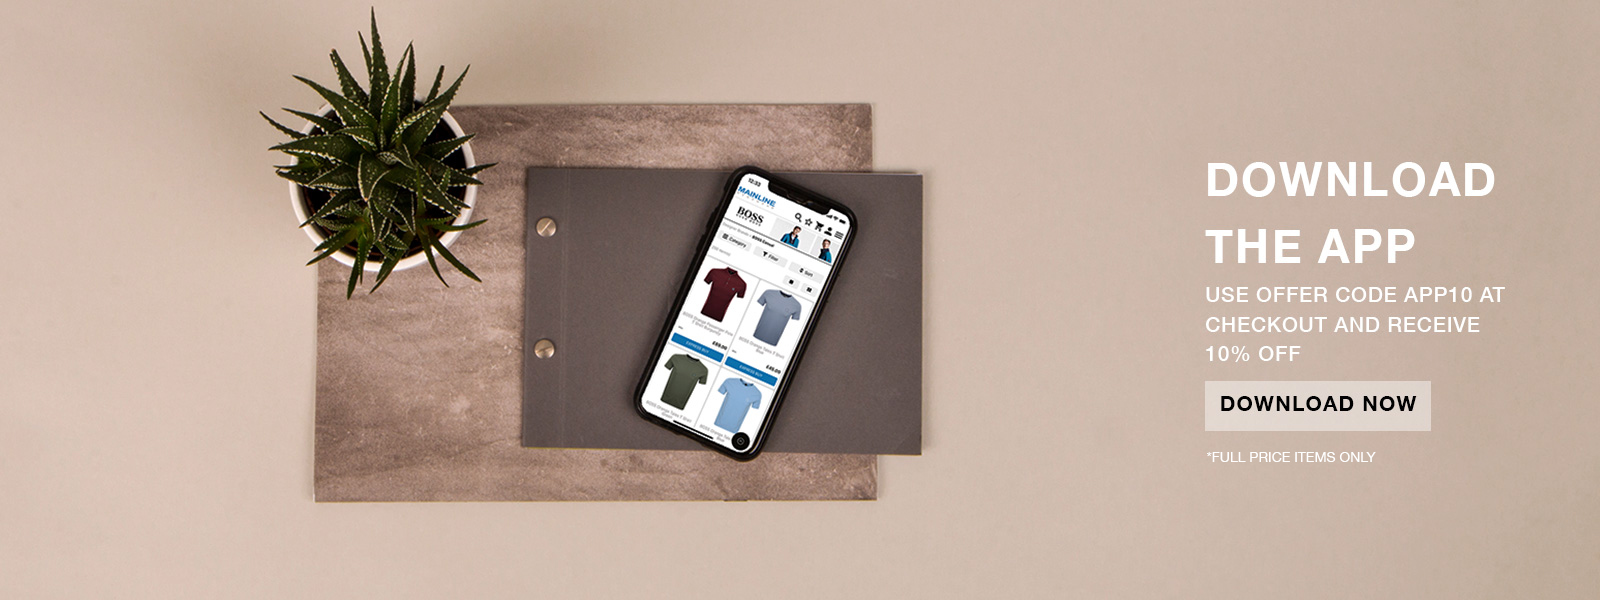 Download the Mainline Menswear app